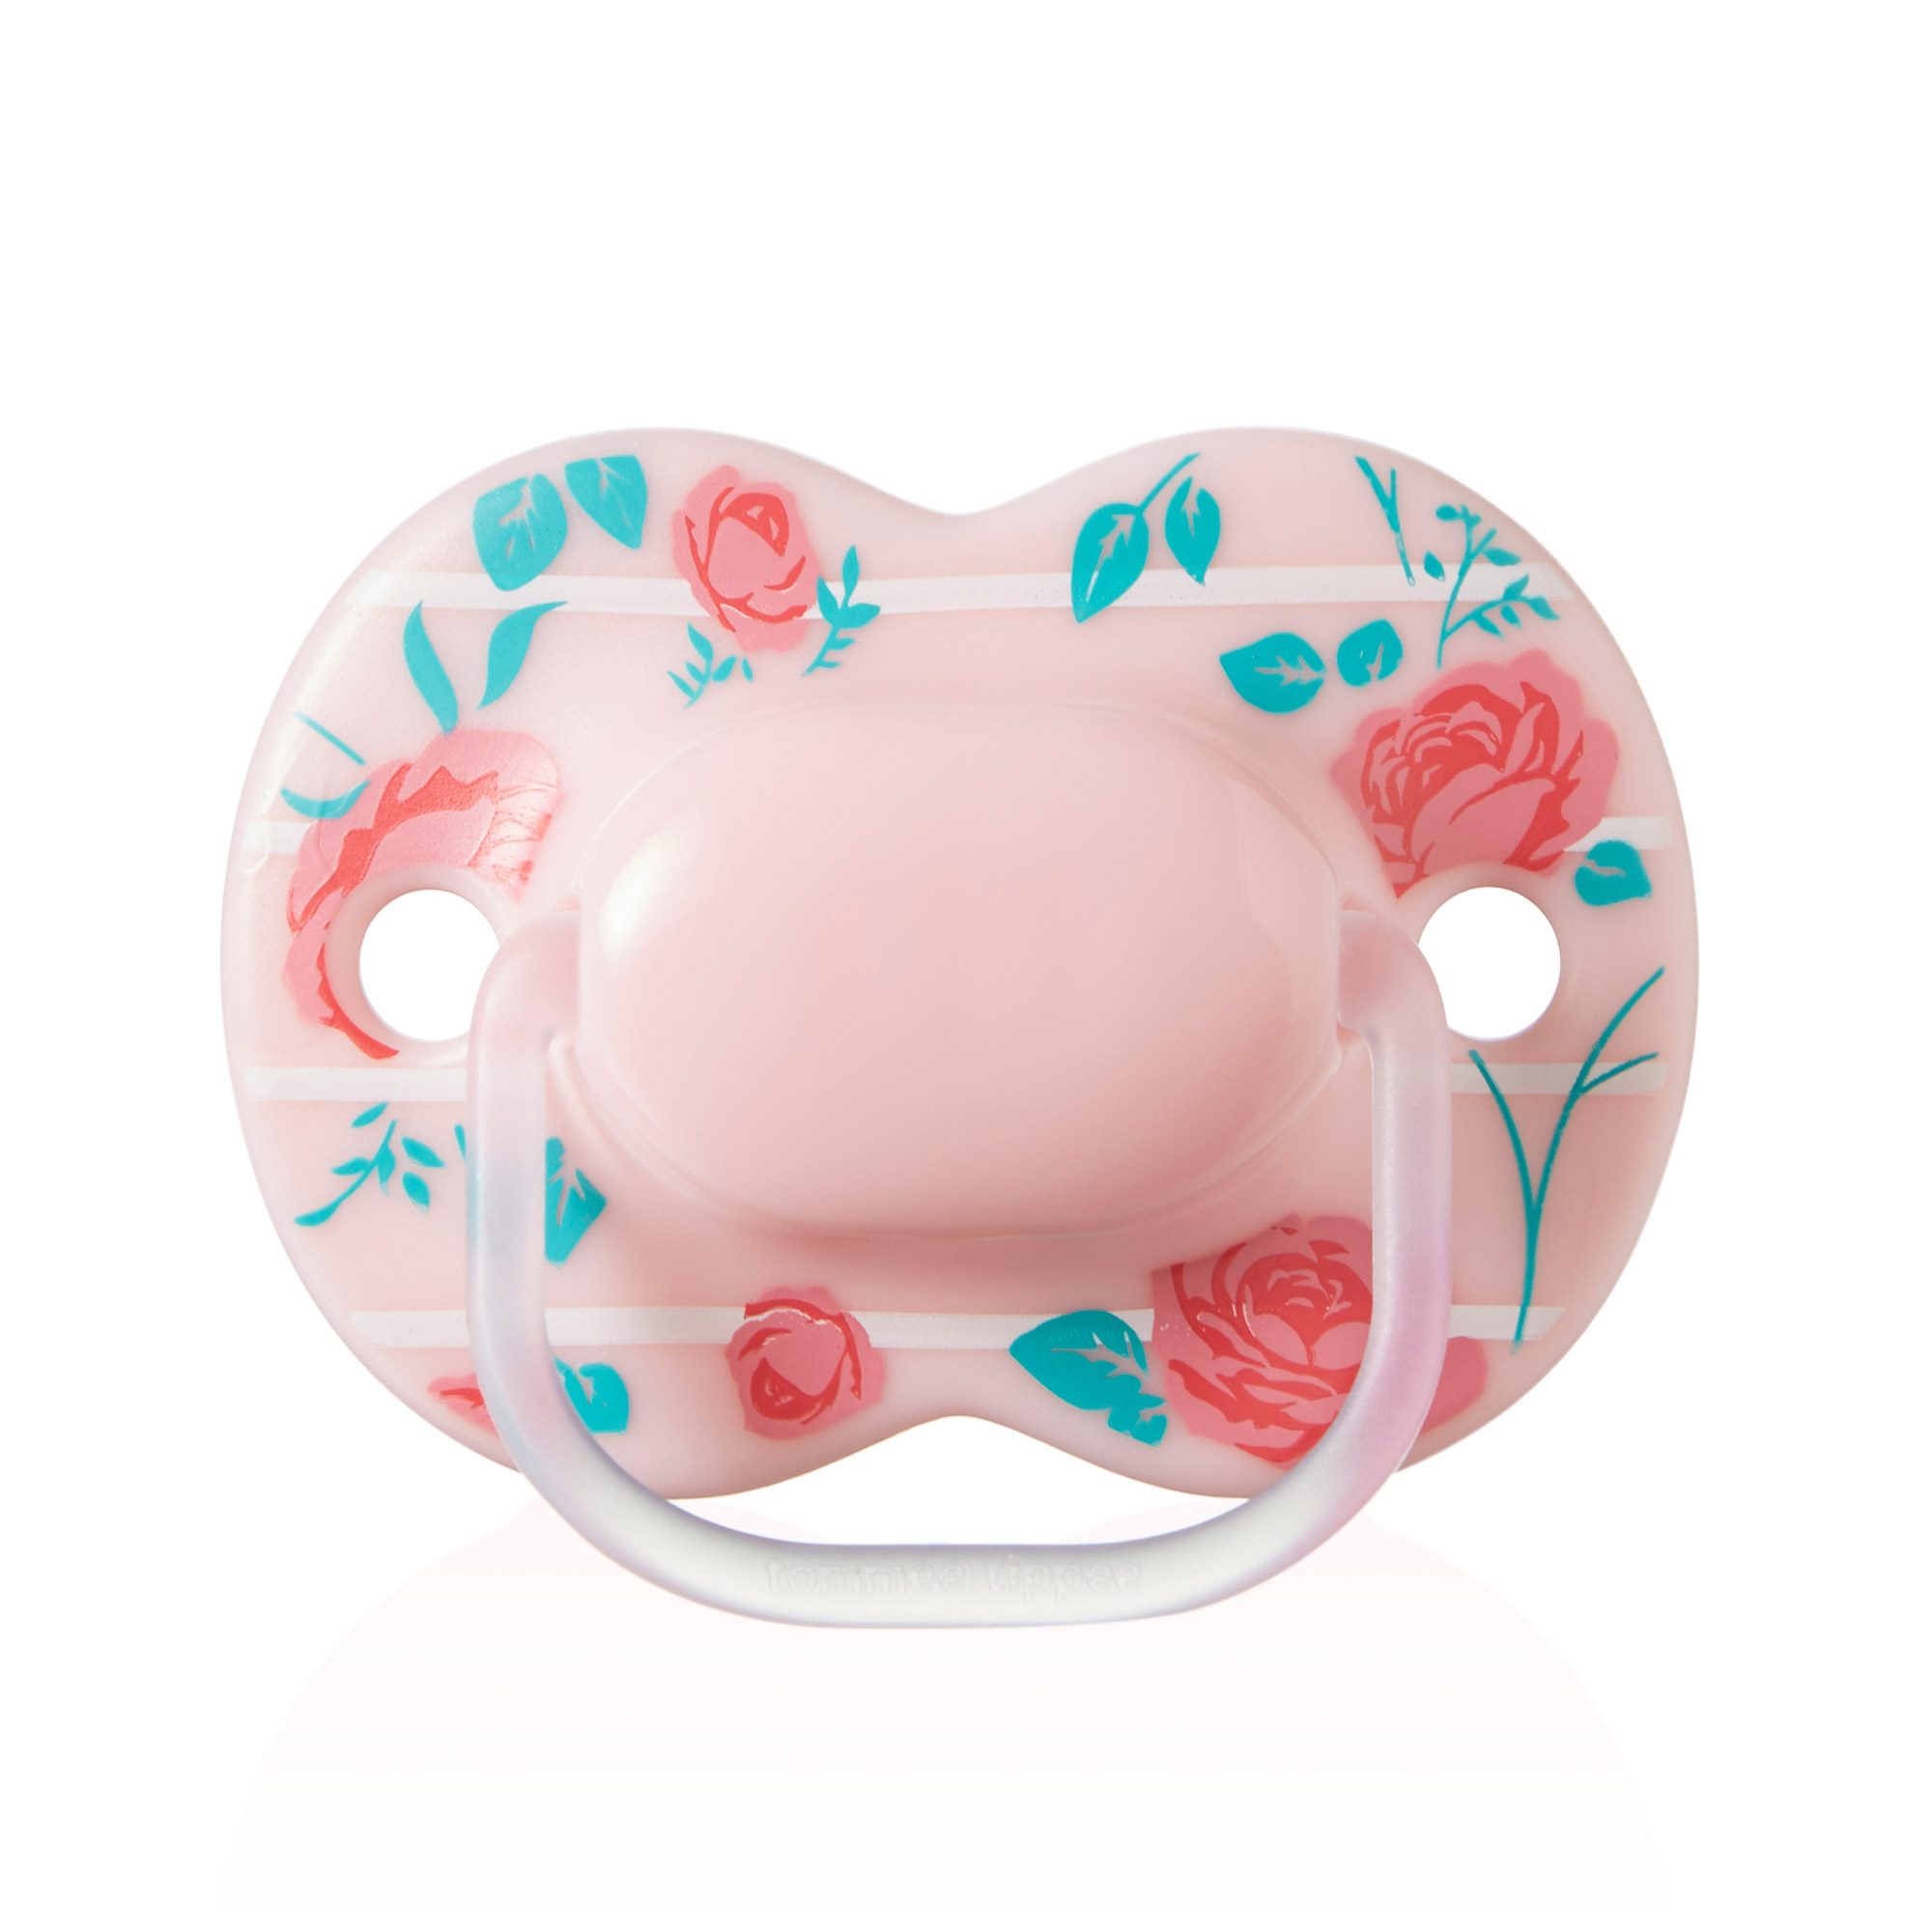 Sucette Little London Fille 0-6 mois de Tommee Tippee